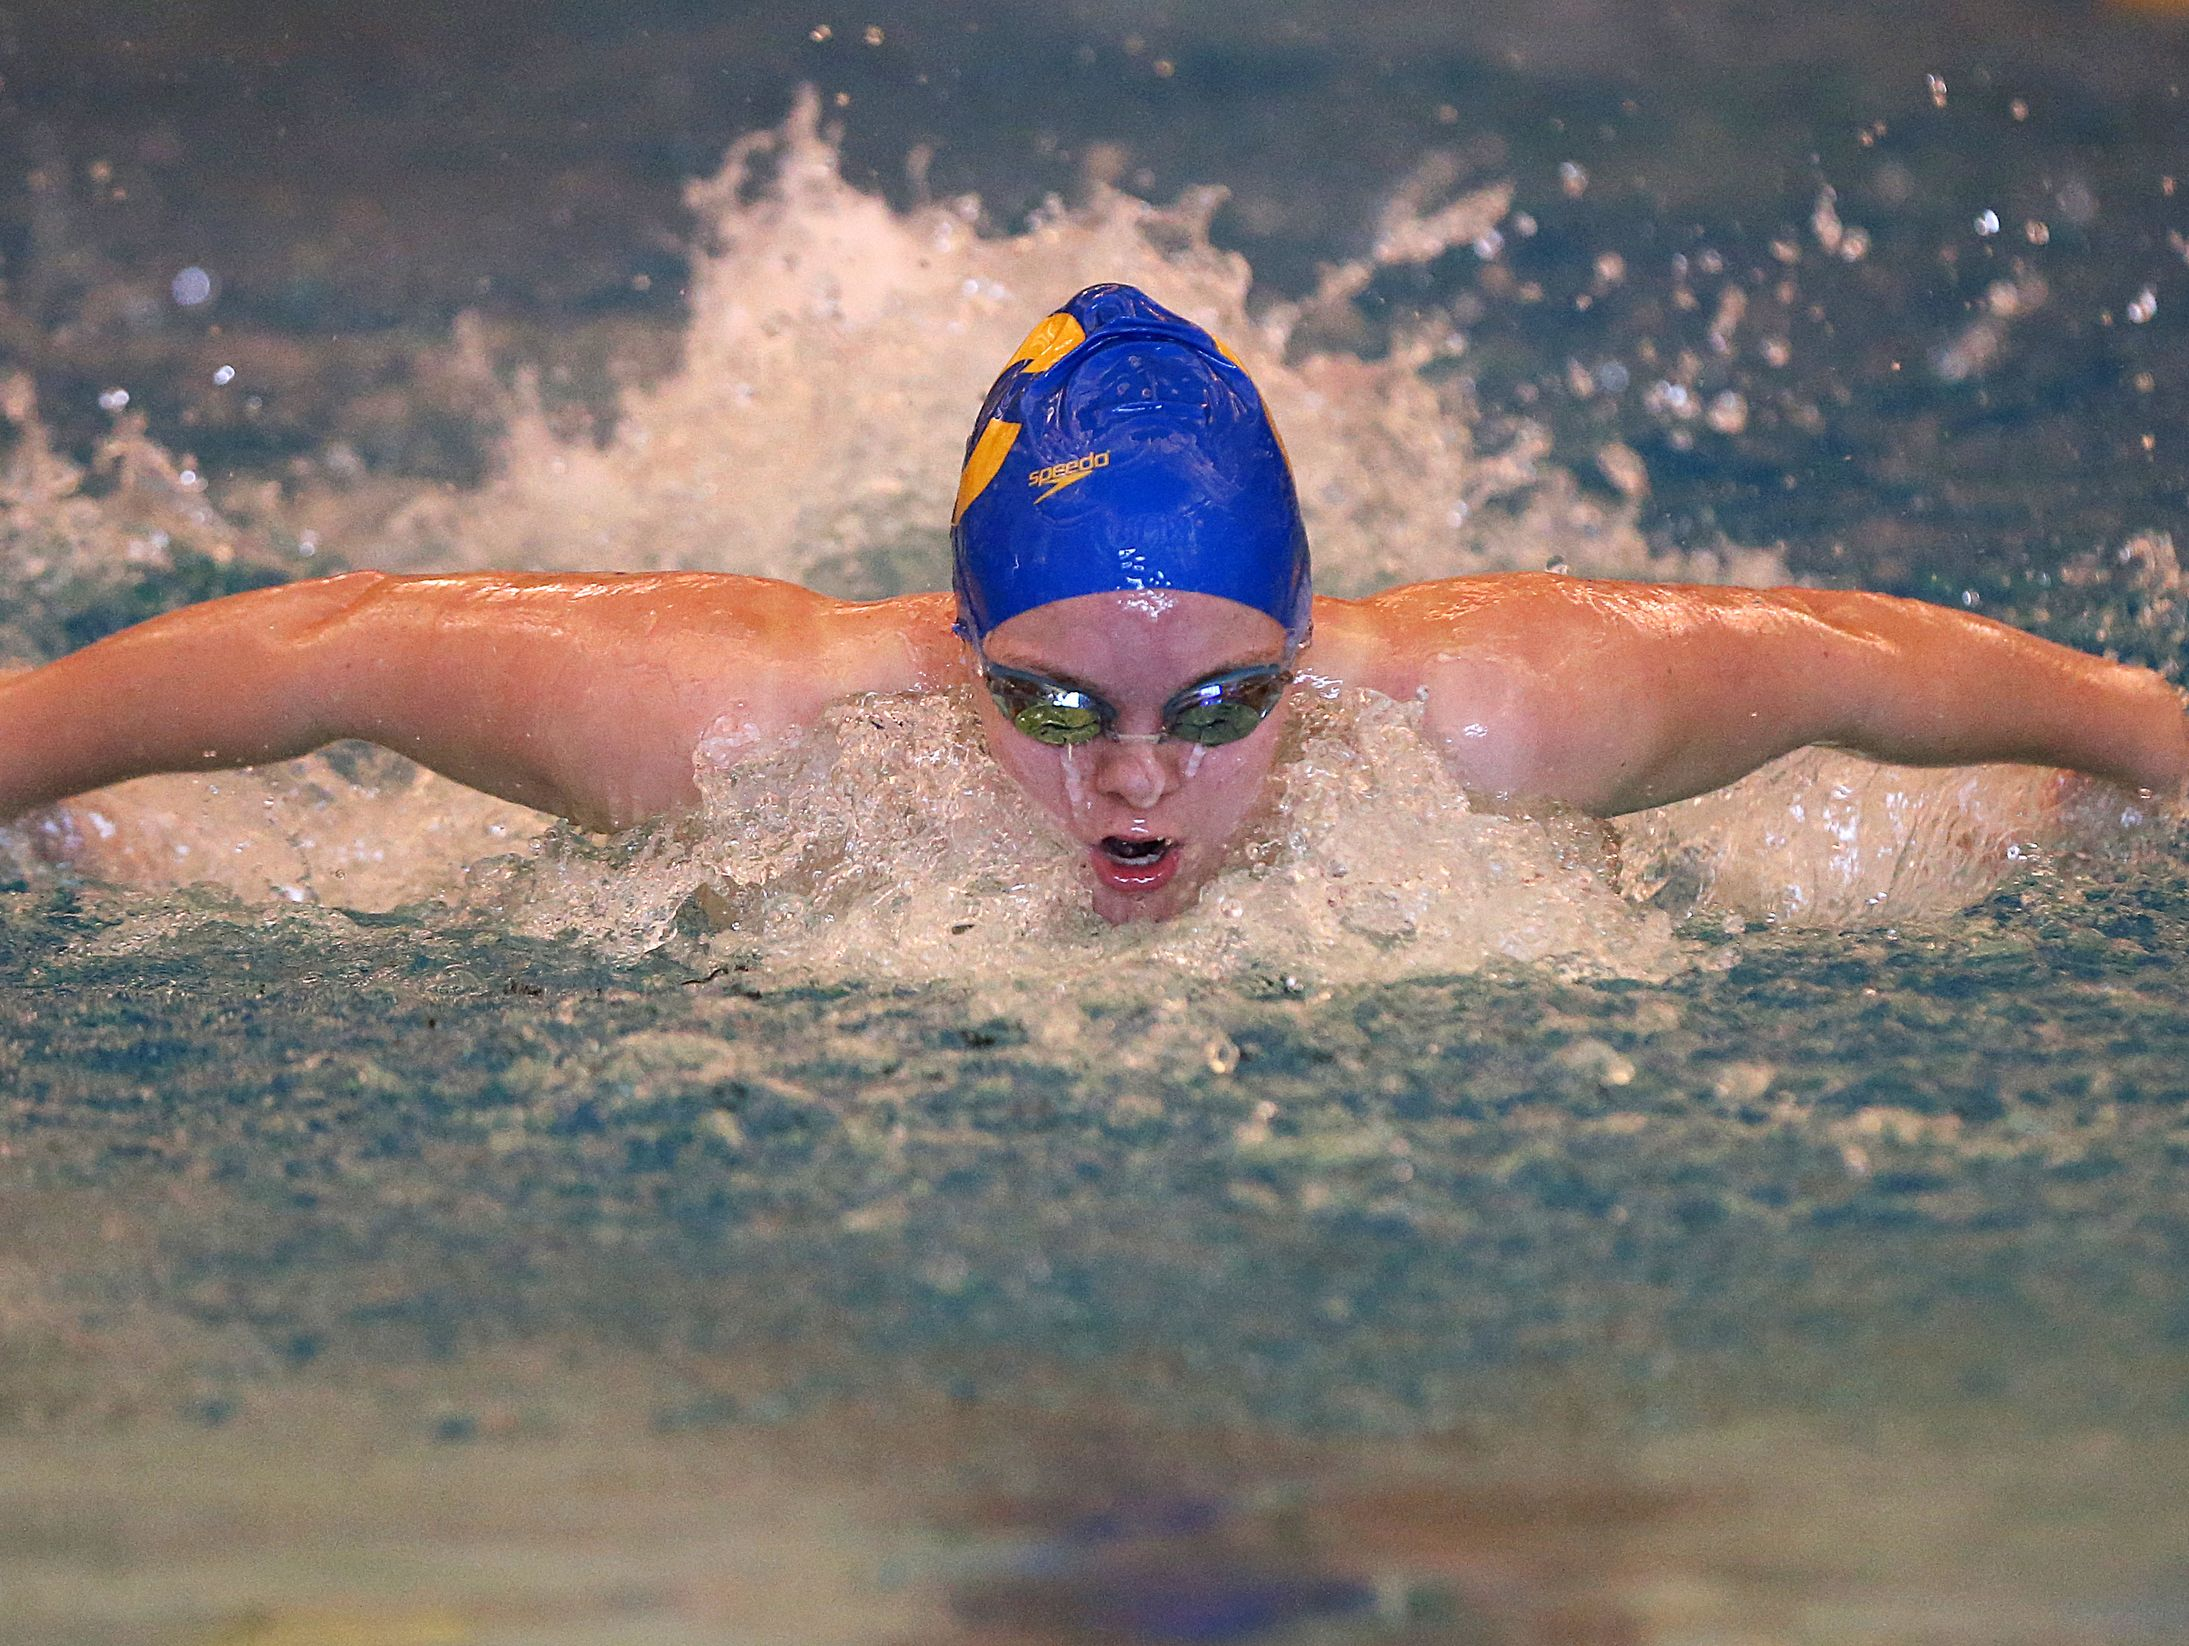 Carmel's Sammie Burchill won the 100 butterfly and 100 backstroke at Carmel High School, Wednesday in a triangular meet against Zionsville and Homestead.